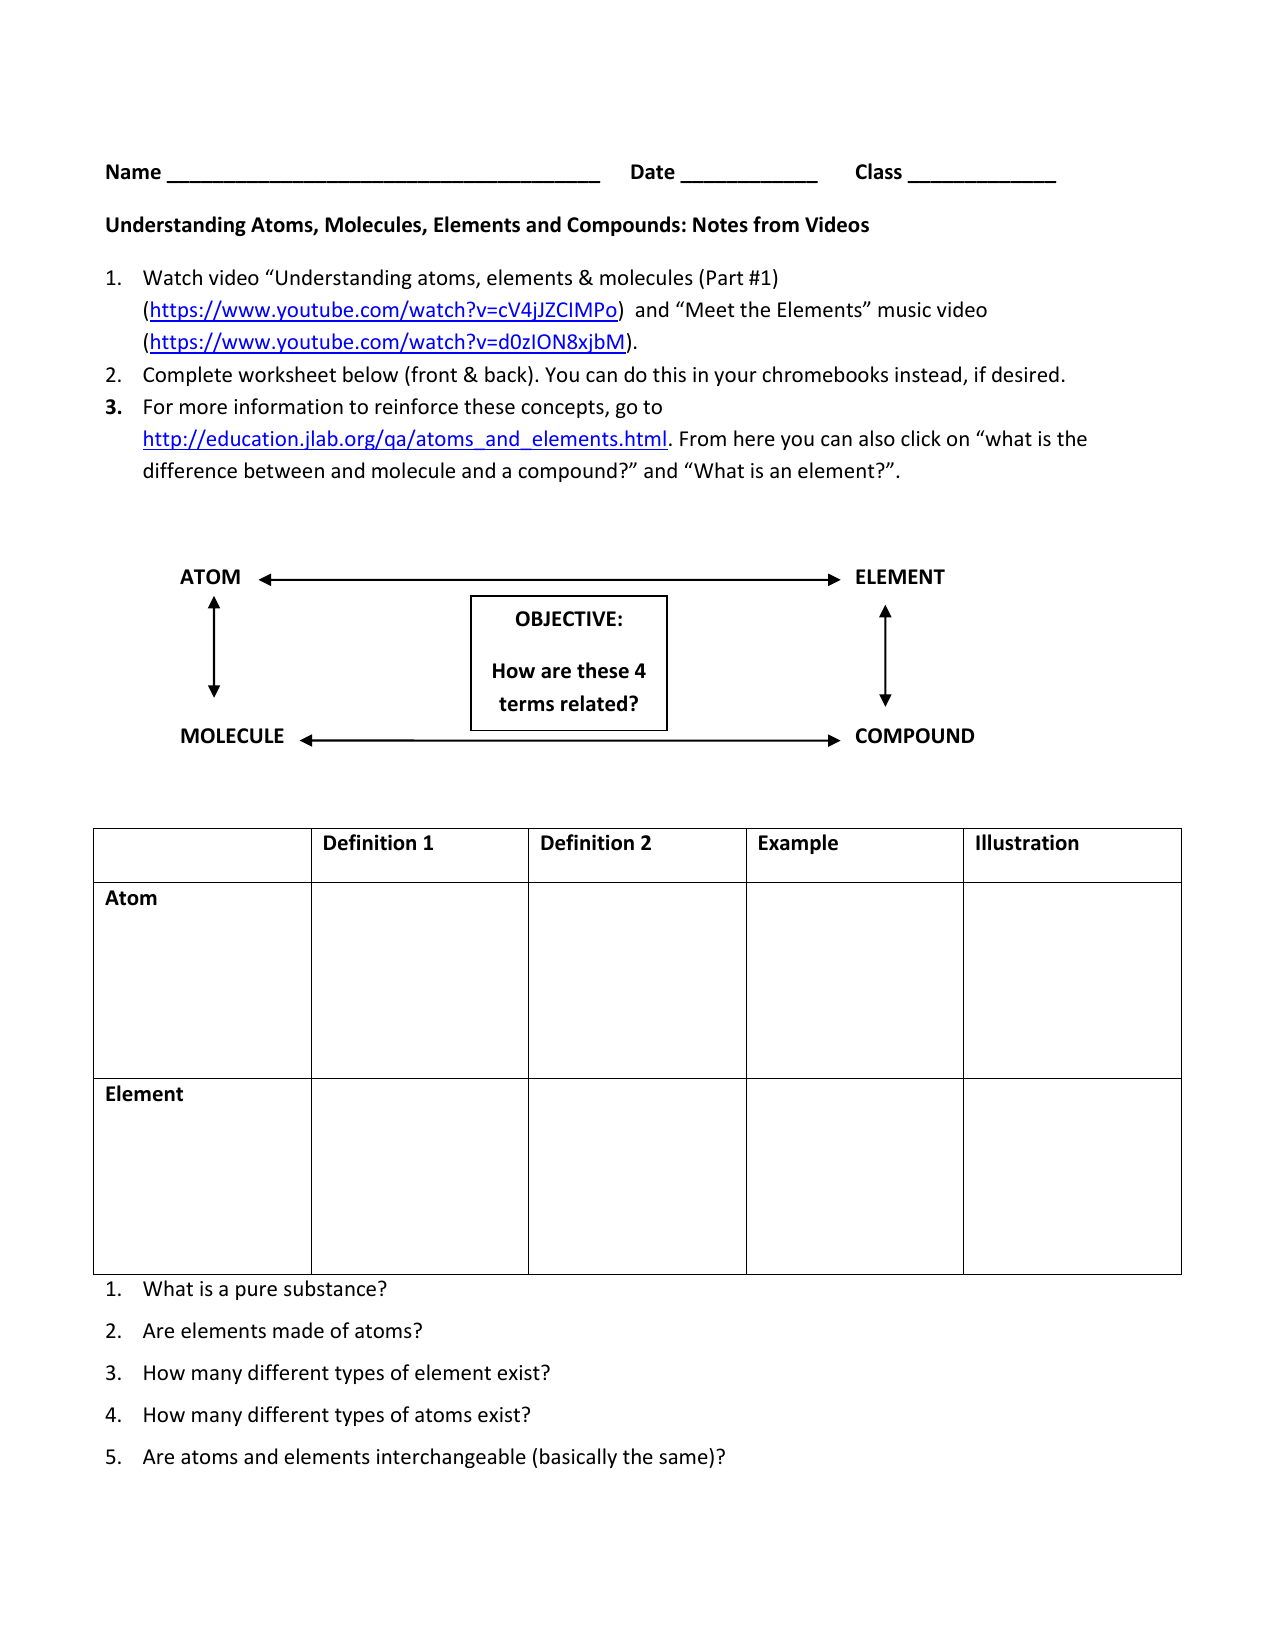 Atoms, Elements, Molecules, Compounds Worksheet for video